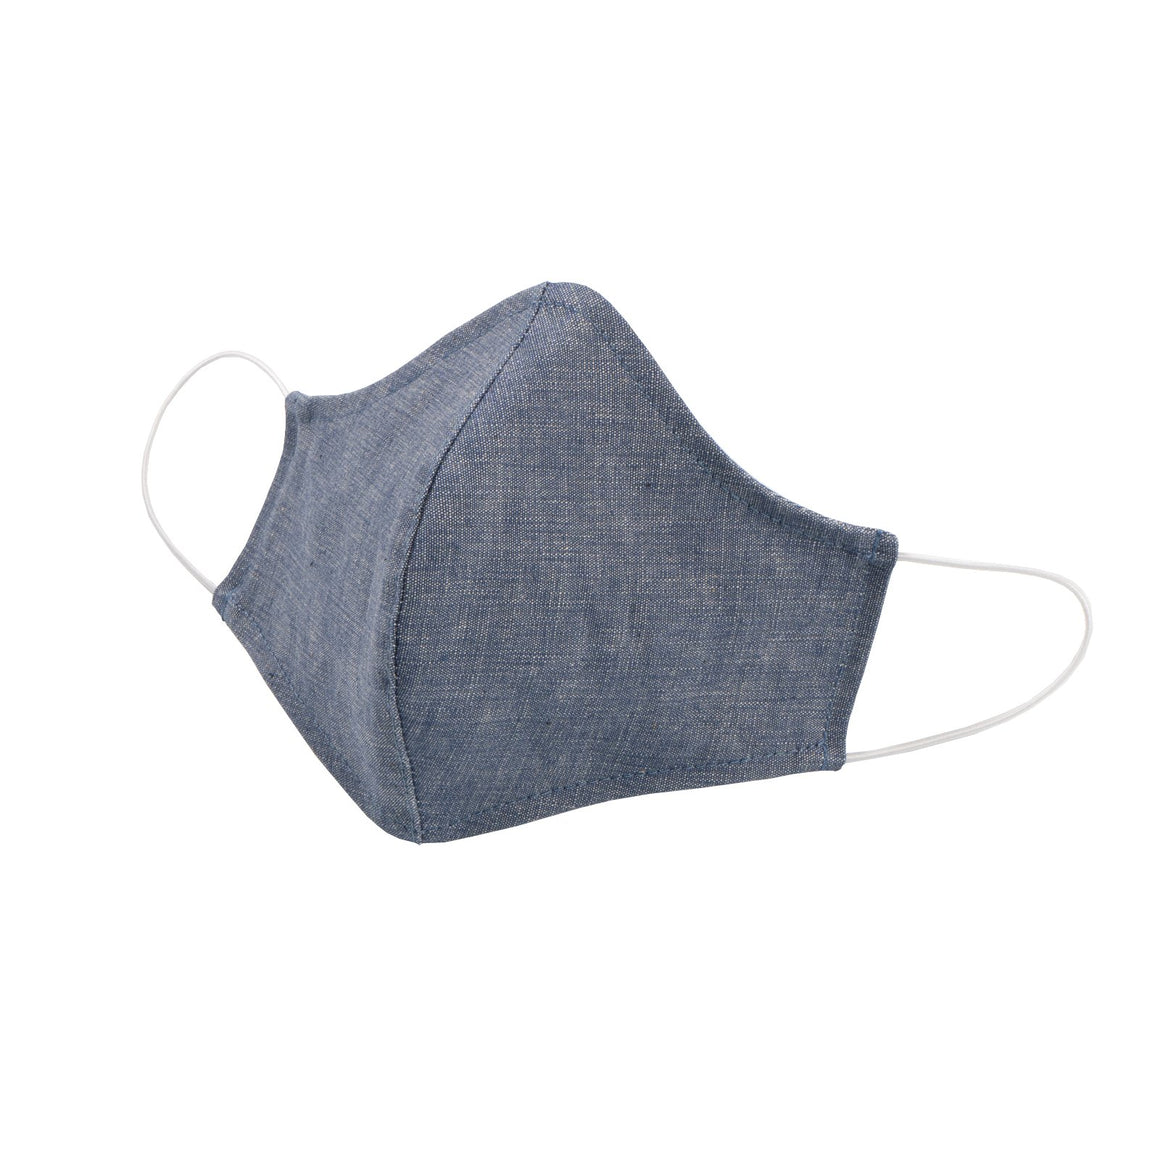 Adult Protective Face Mask - Cotton Chambray